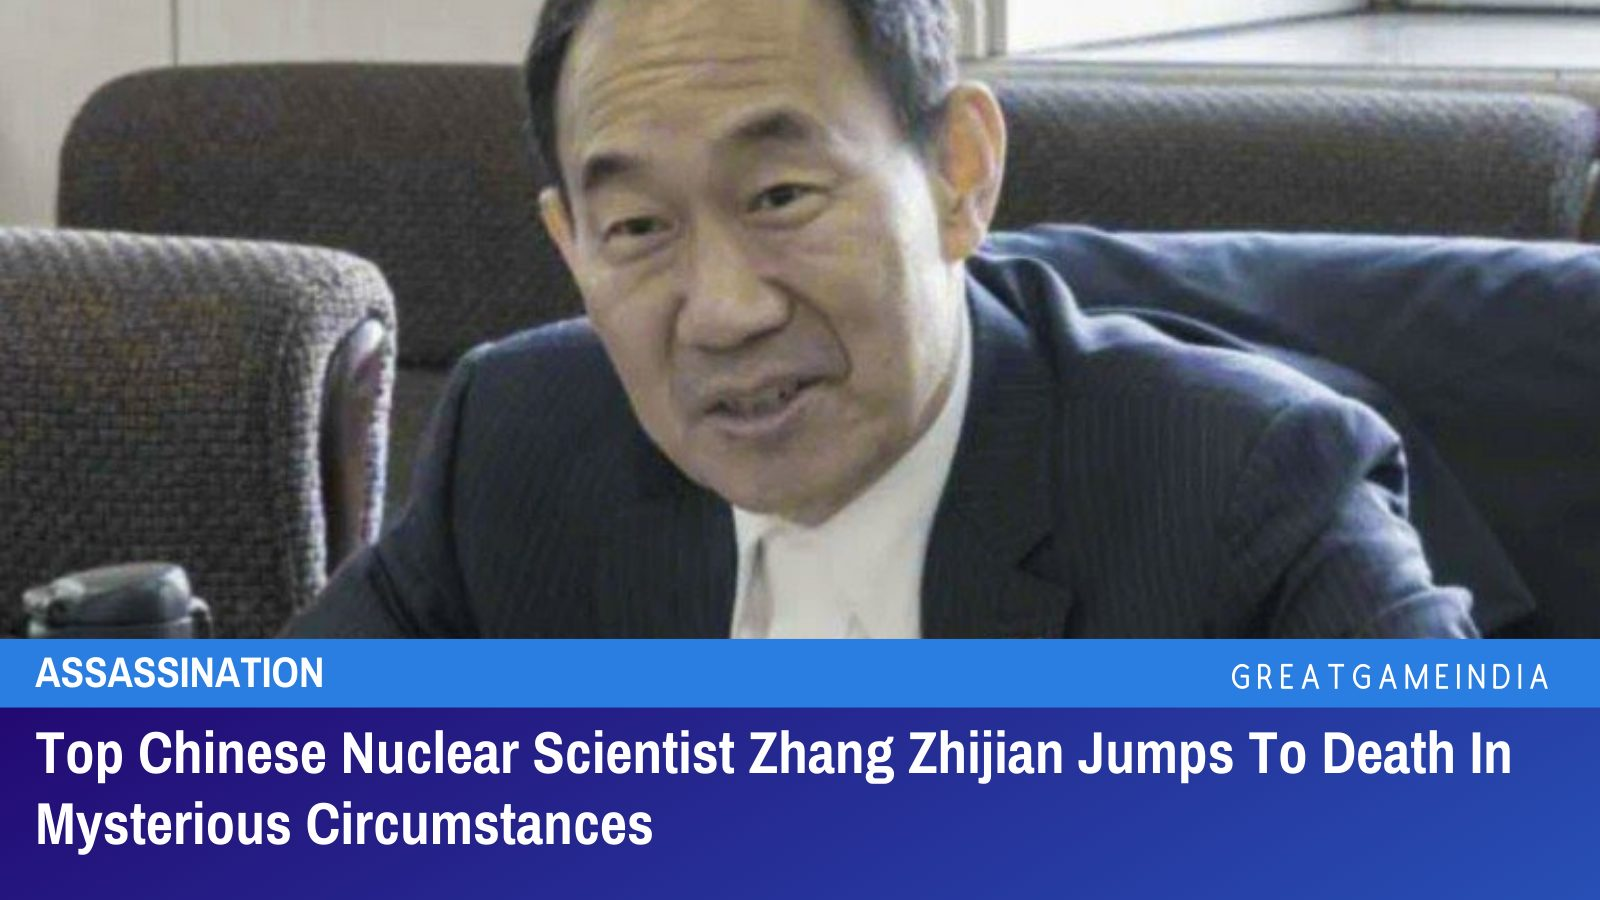 Top Chinese Nuclear Scientist Zhang Zhijian Jumps To Death In Mysterious Circumstances